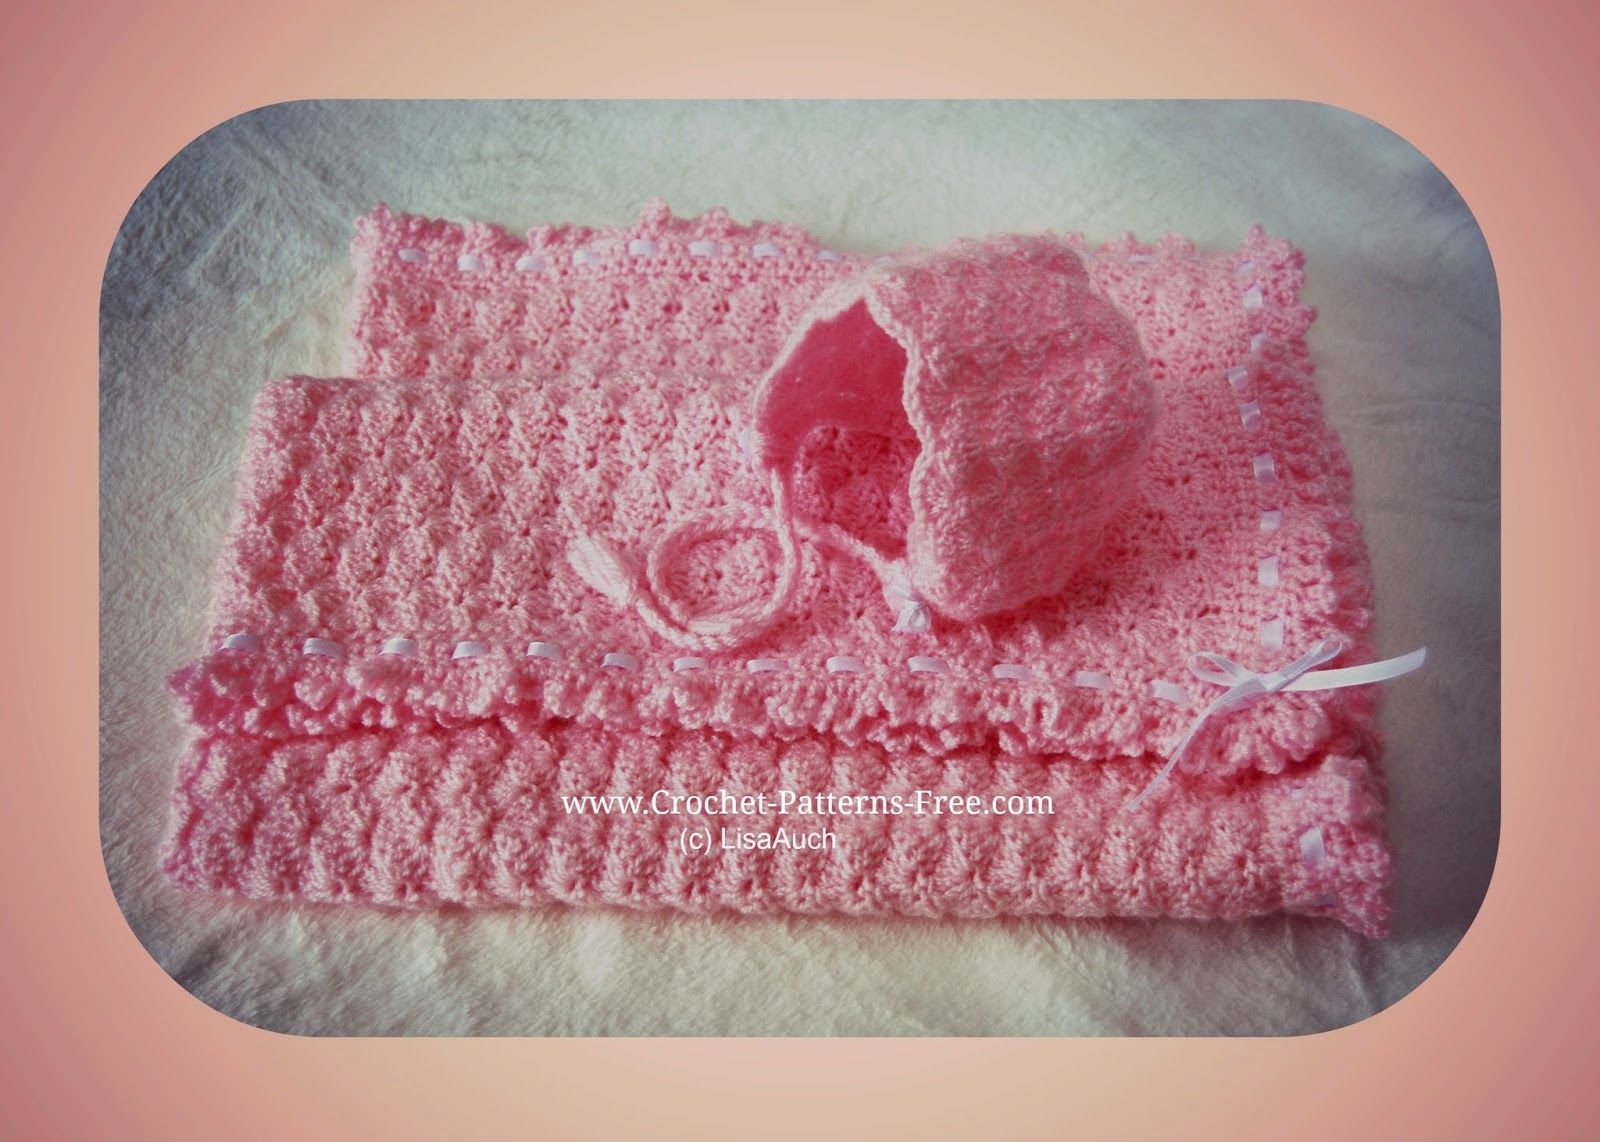 Free crochet baby blanket pattern in shell stitch free crochet free crochet baby blanket pattern in shell stitch bankloansurffo Gallery